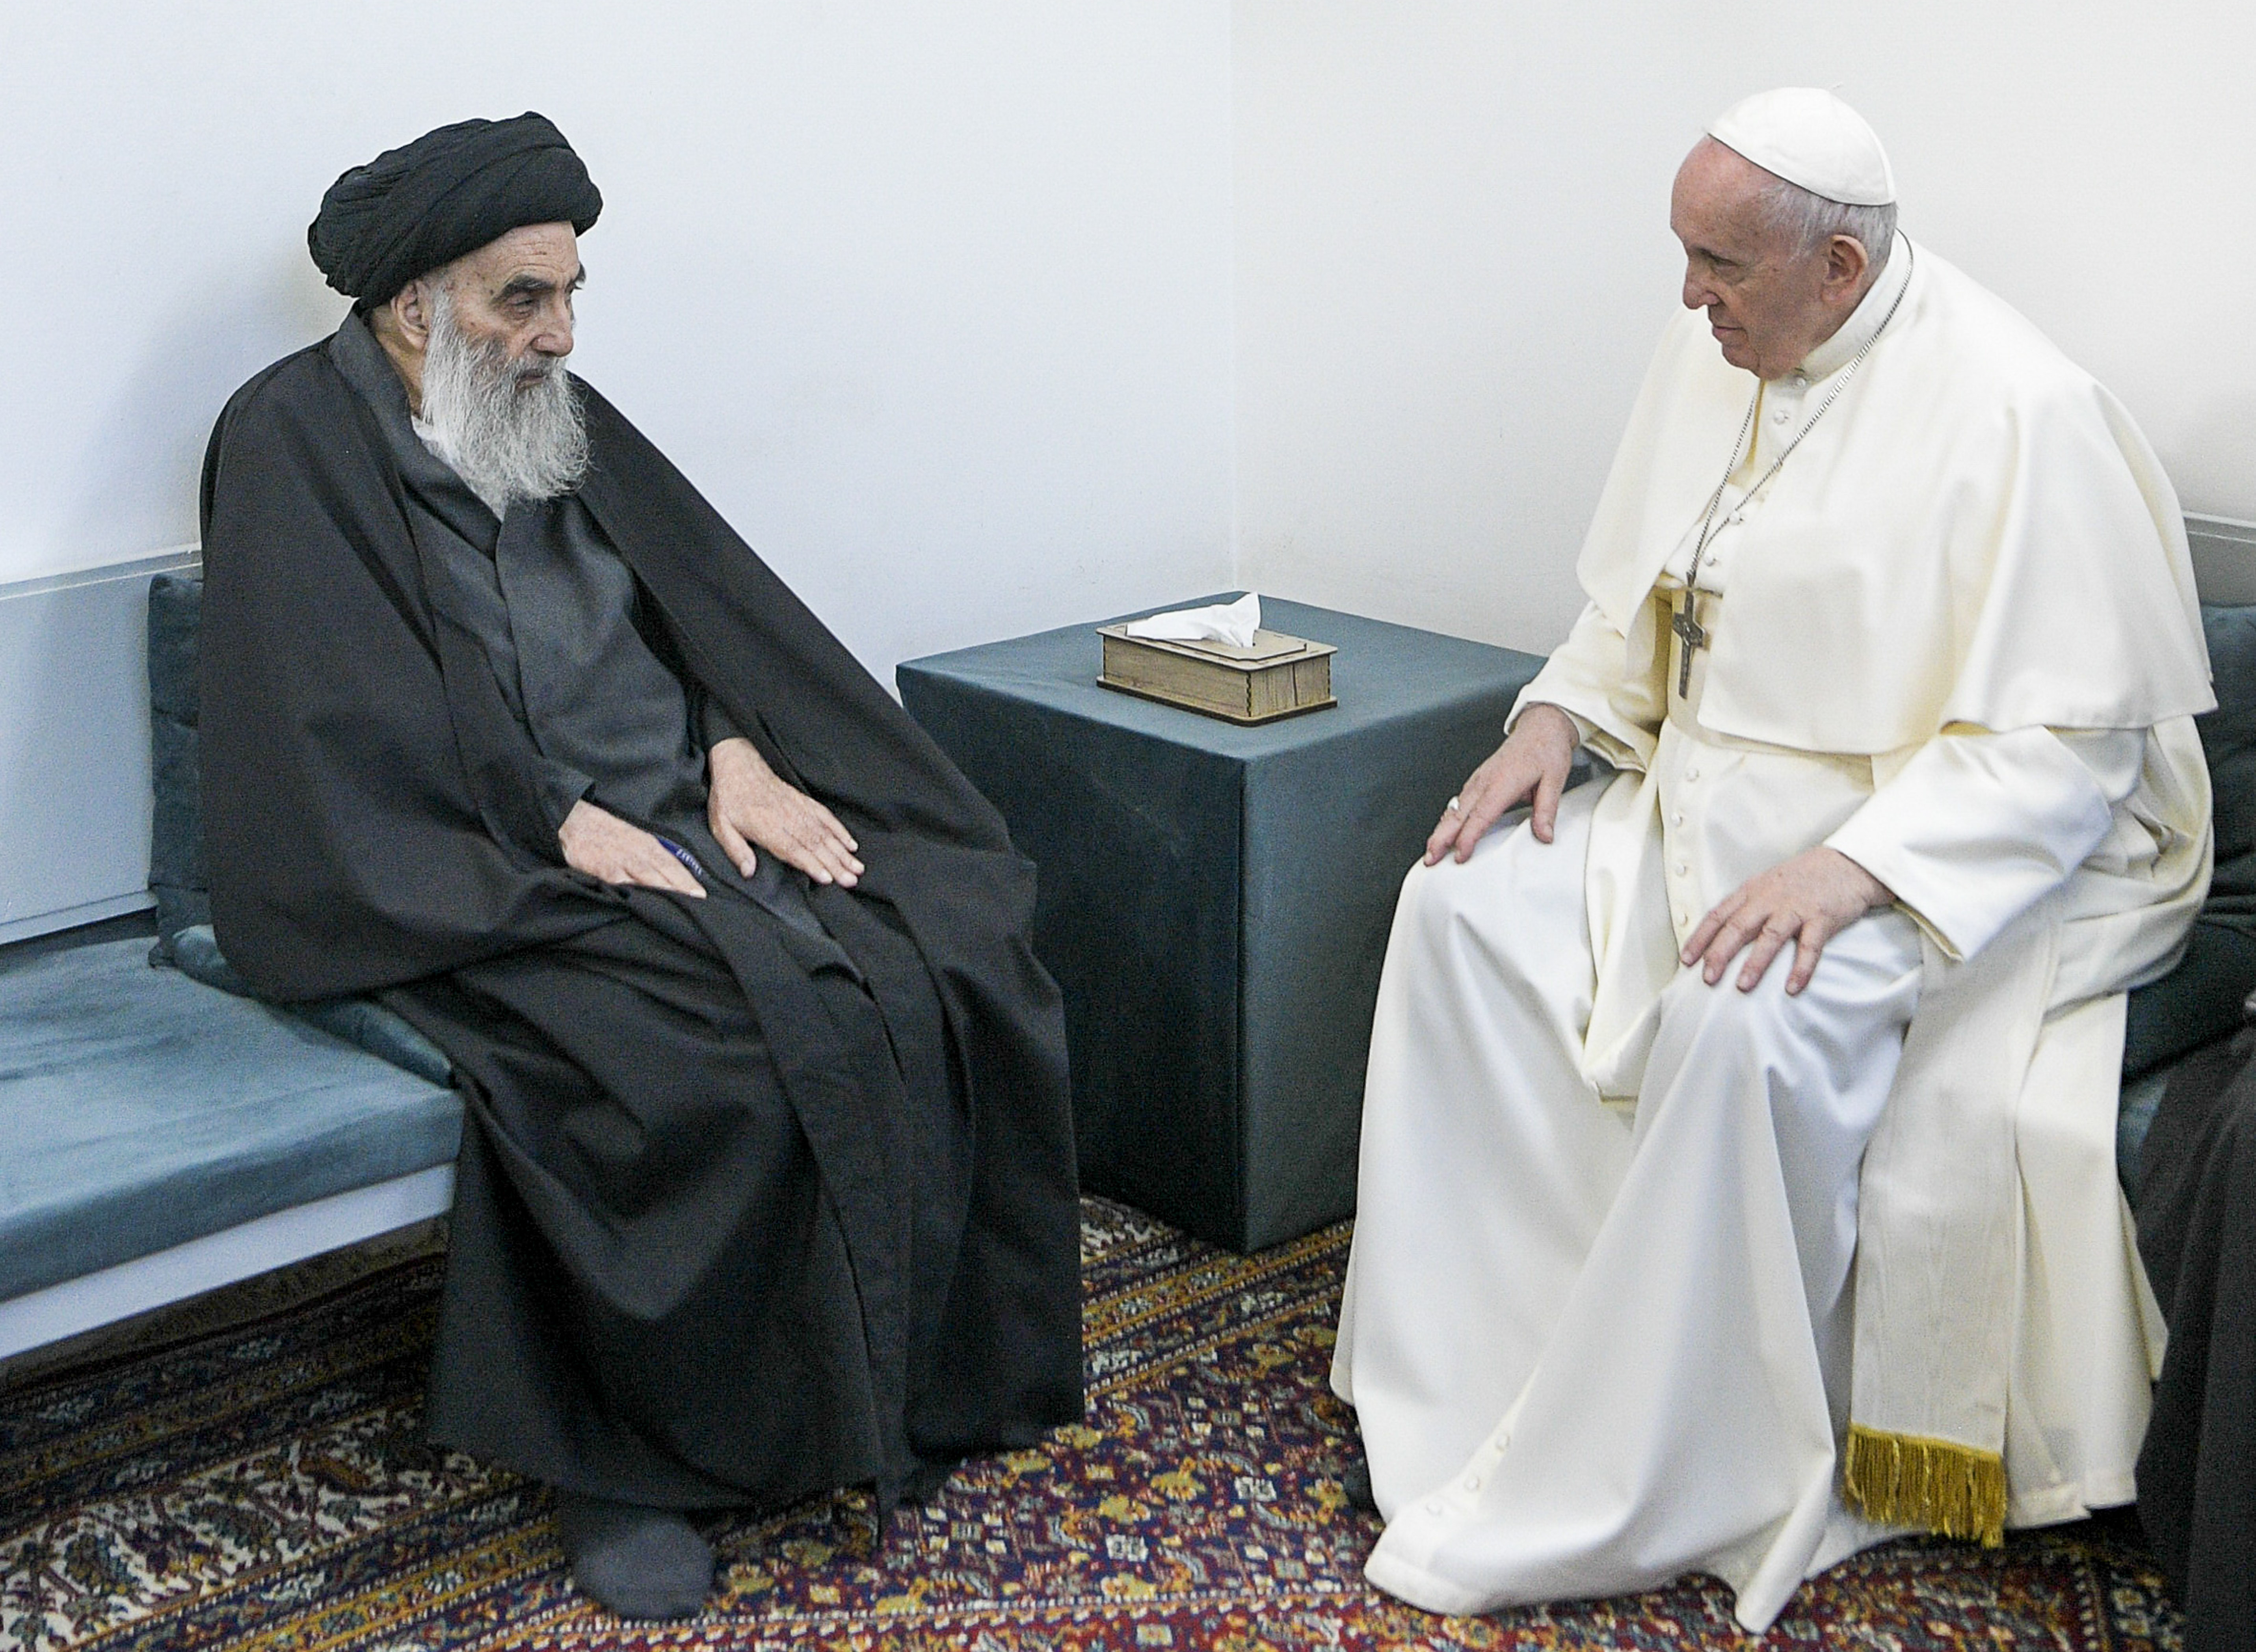 Pope Francis, right, meets with Iraq's leading Shiite cleric, Grand Ayatollah Ali al-Sistani in Najaf, Iraq, on March 6, 2021.